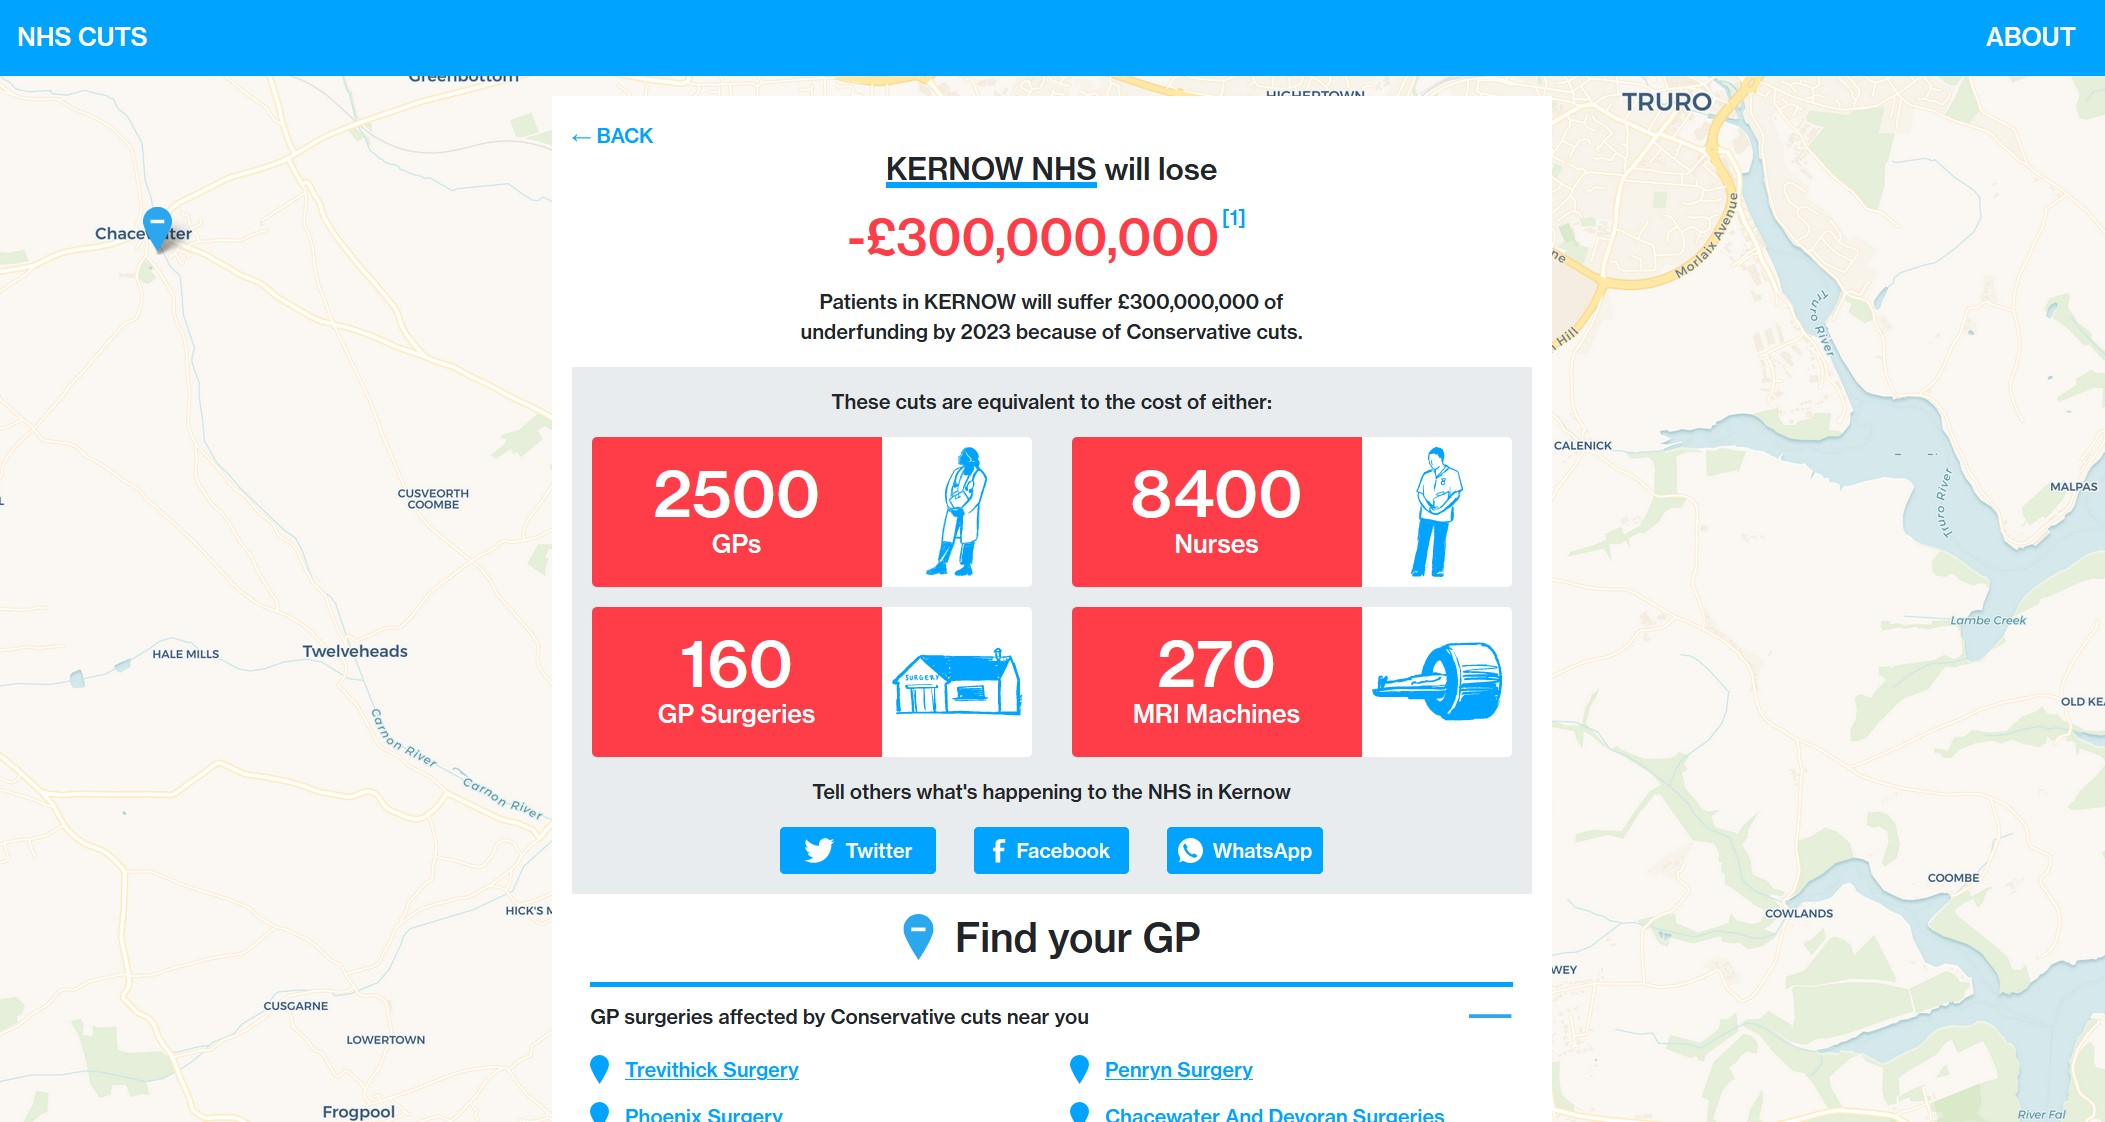 Scary stuff, just put in your postcode to see how cuts and underfunding affect the NHS in your area